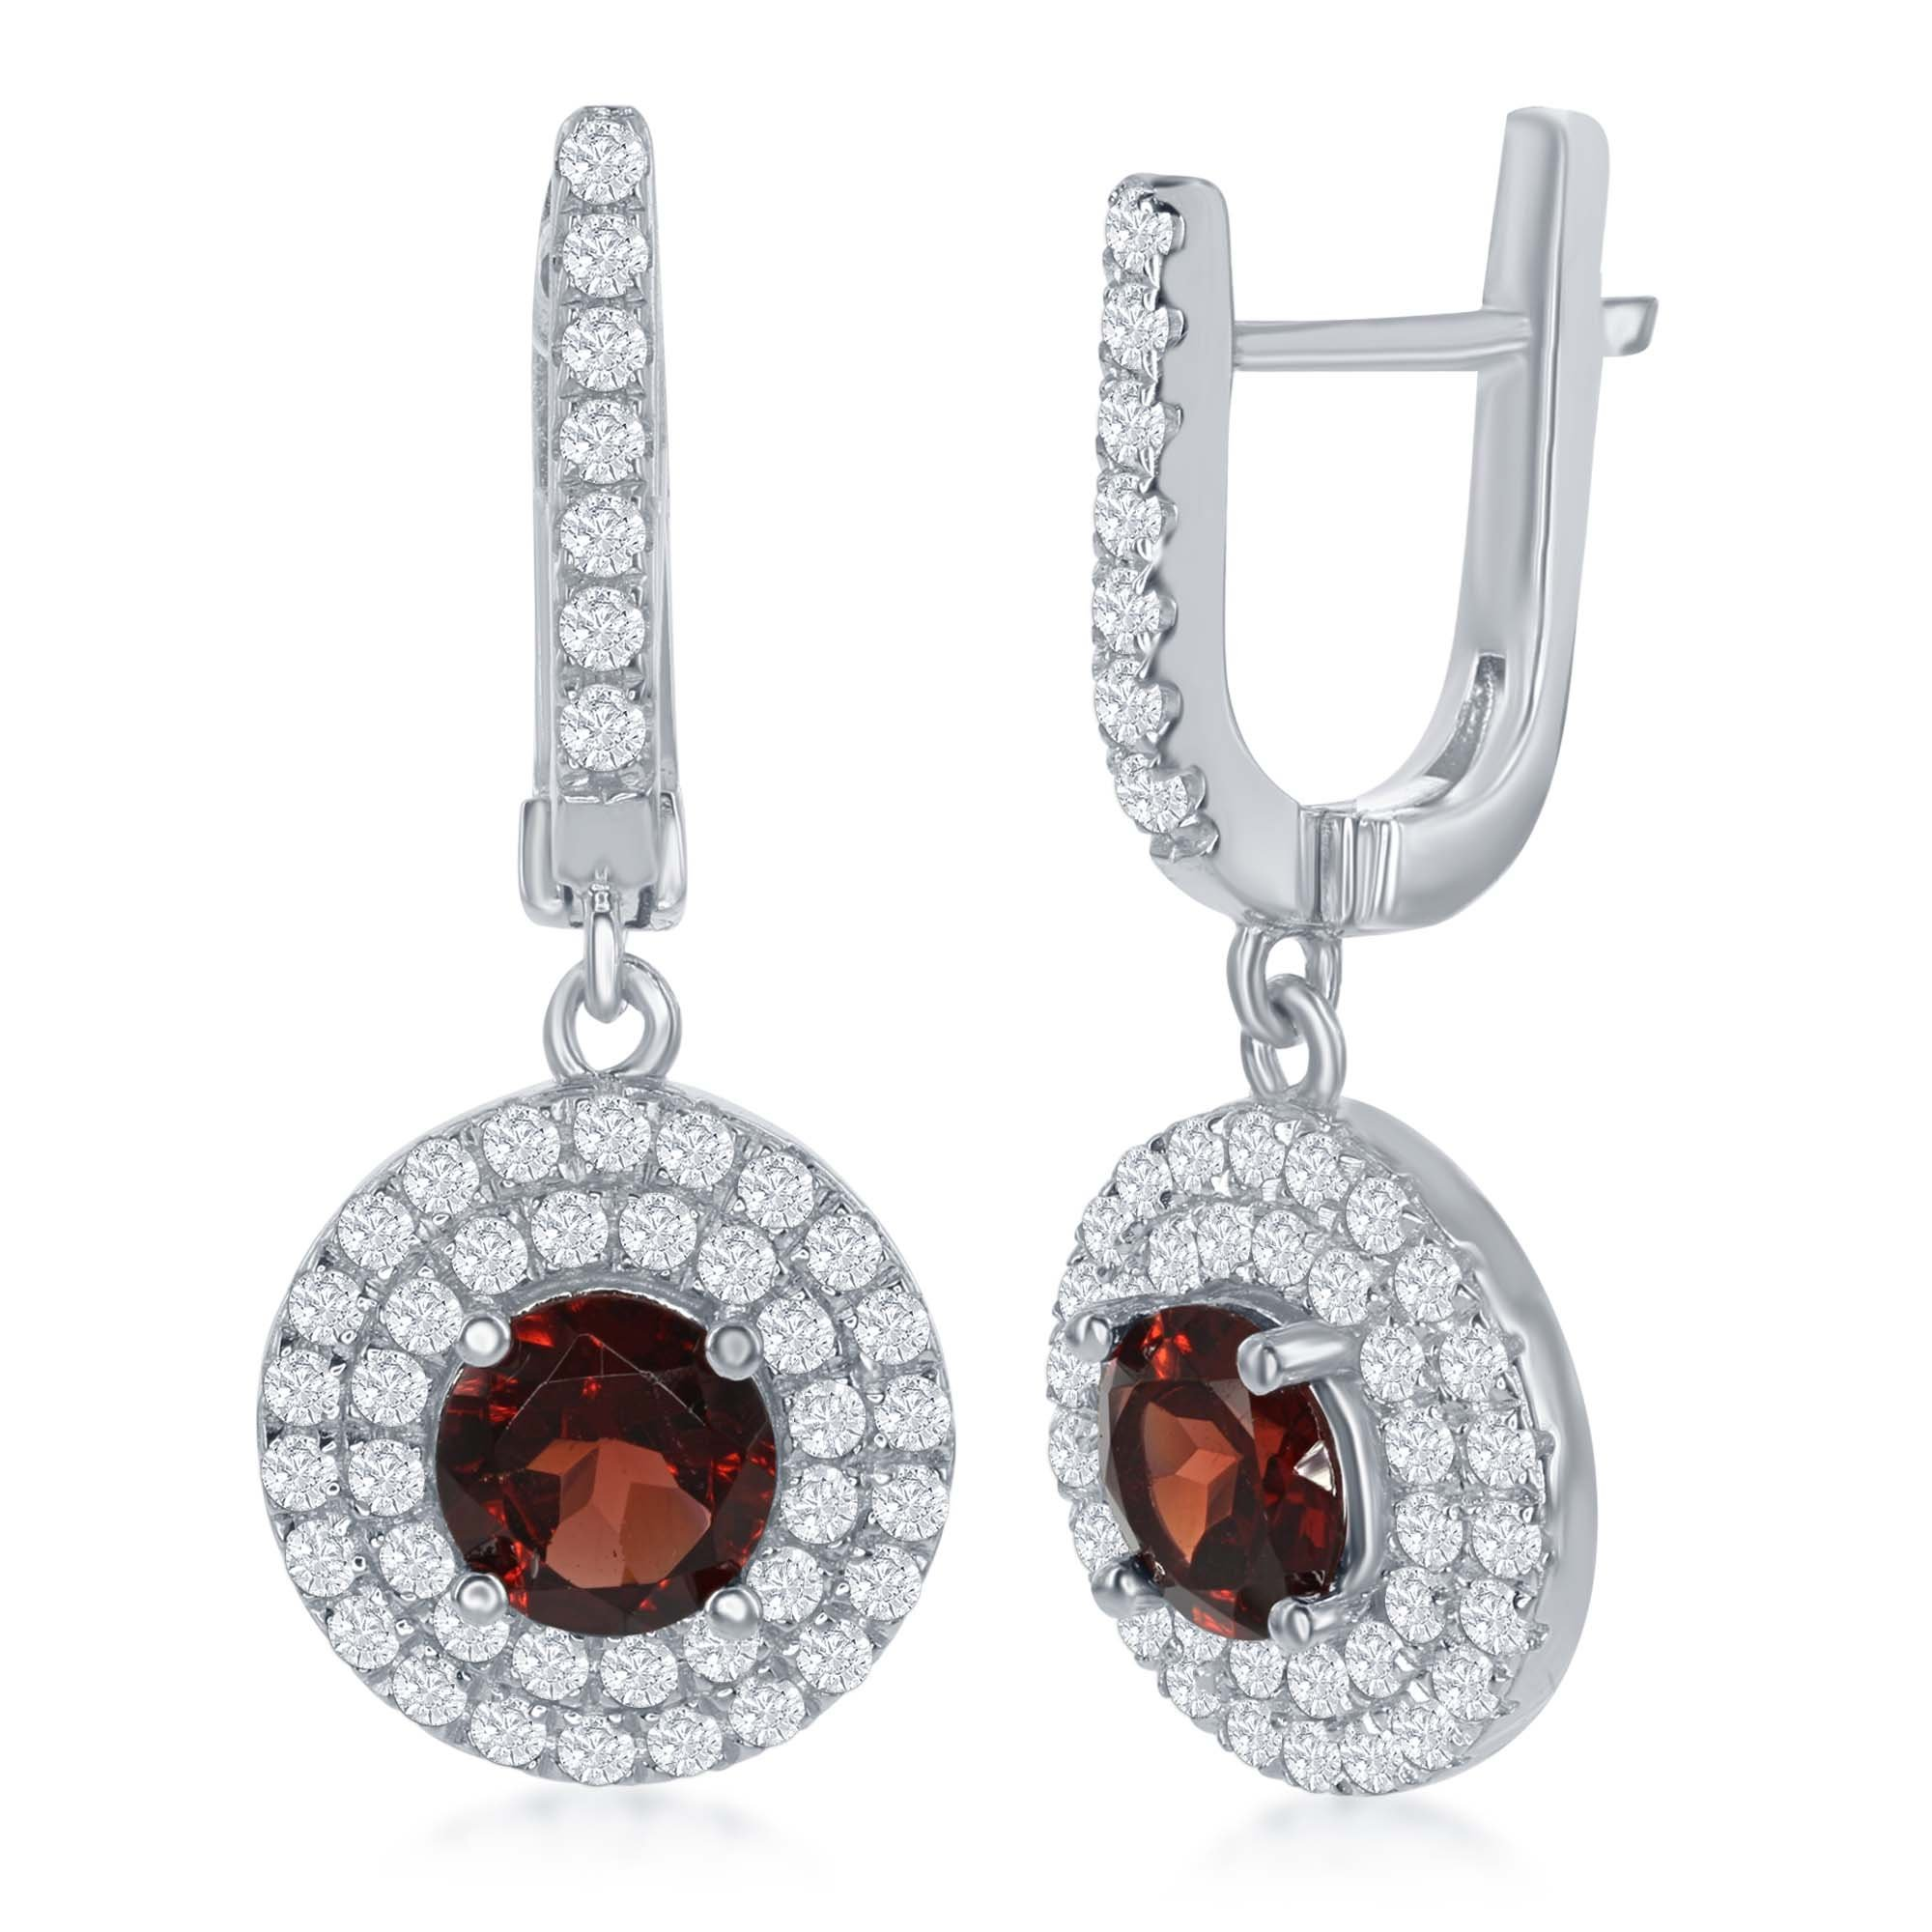 Sterling Silver High Polish Round White Topaz with Center Garnet Gemstone Earrings by Beaux Bijoux